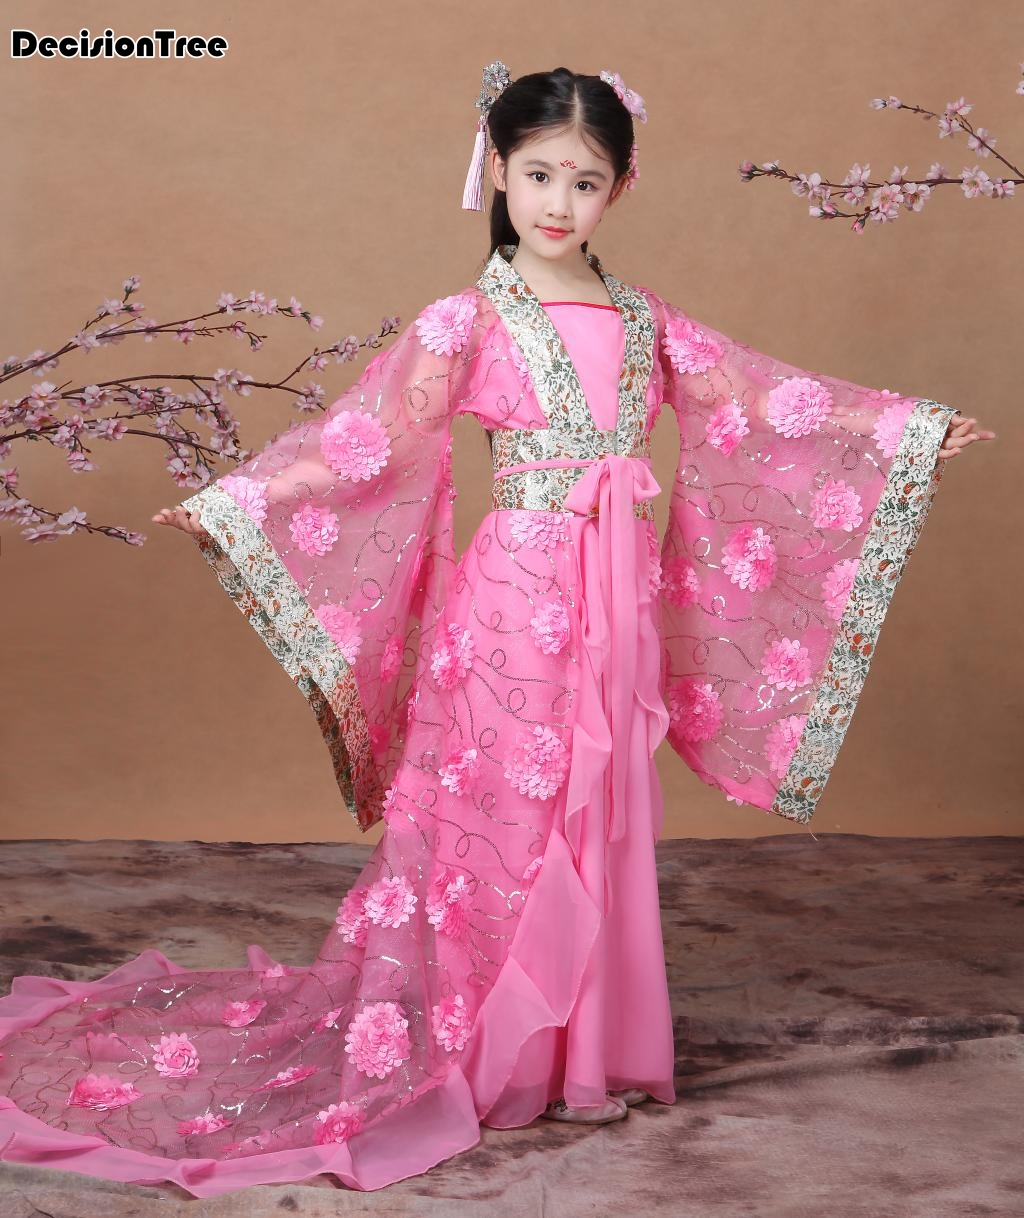 2019 new pink chinese ancient traditional girls hanfu clothing cosplay party dresses tang dynasty costumes for2019 new pink chinese ancient traditional girls hanfu clothing cosplay party dresses tang dynasty costumes for